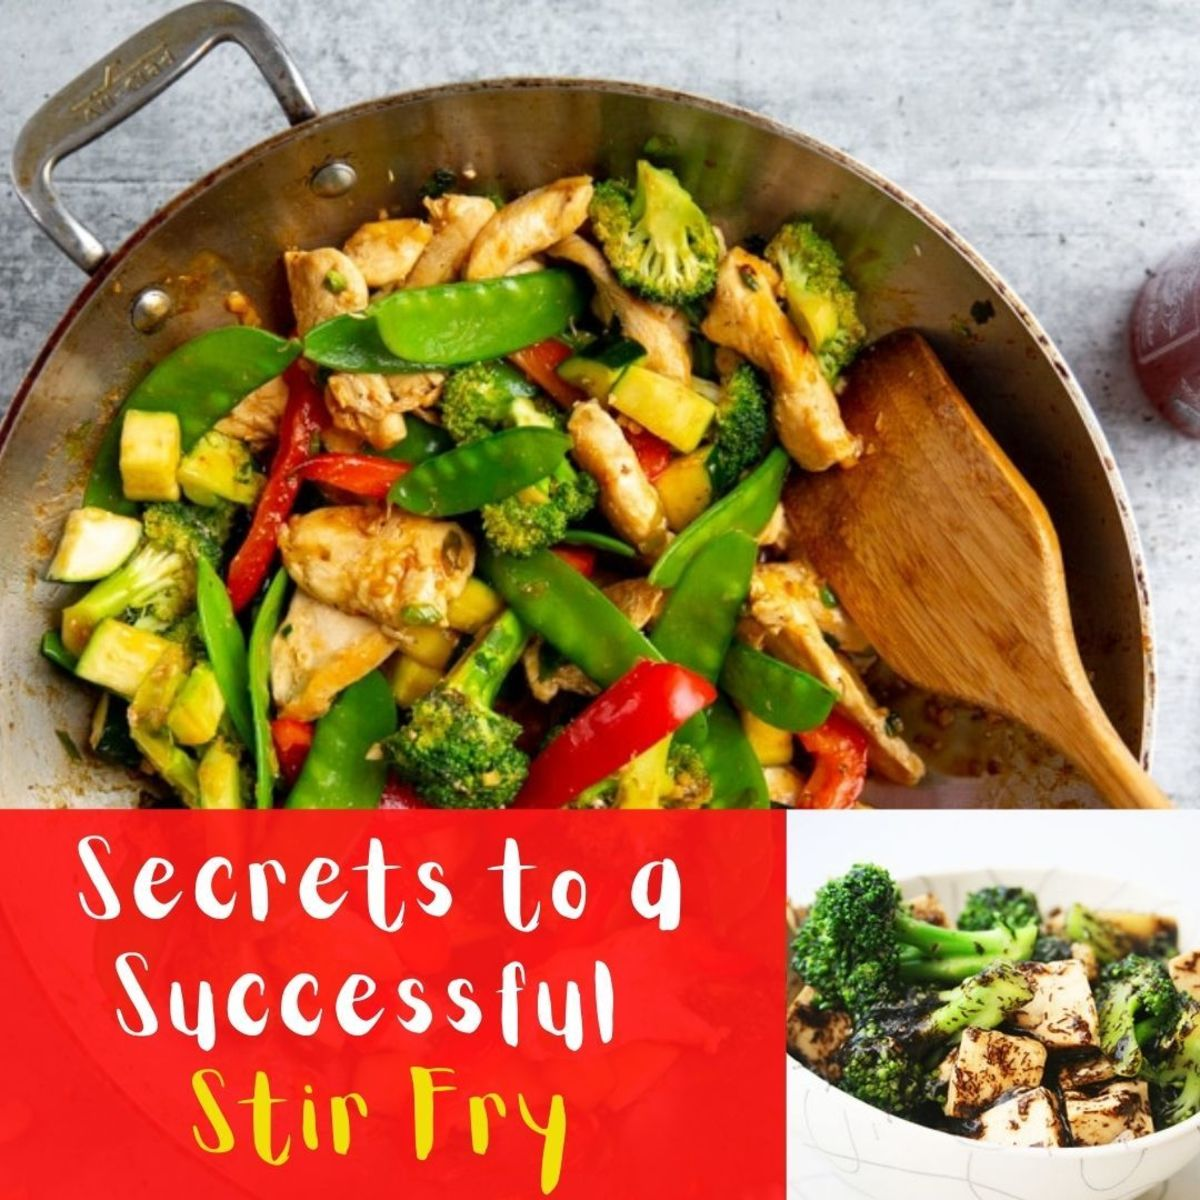 How To Make A Stir-Fry? Follow these 6 simple tips